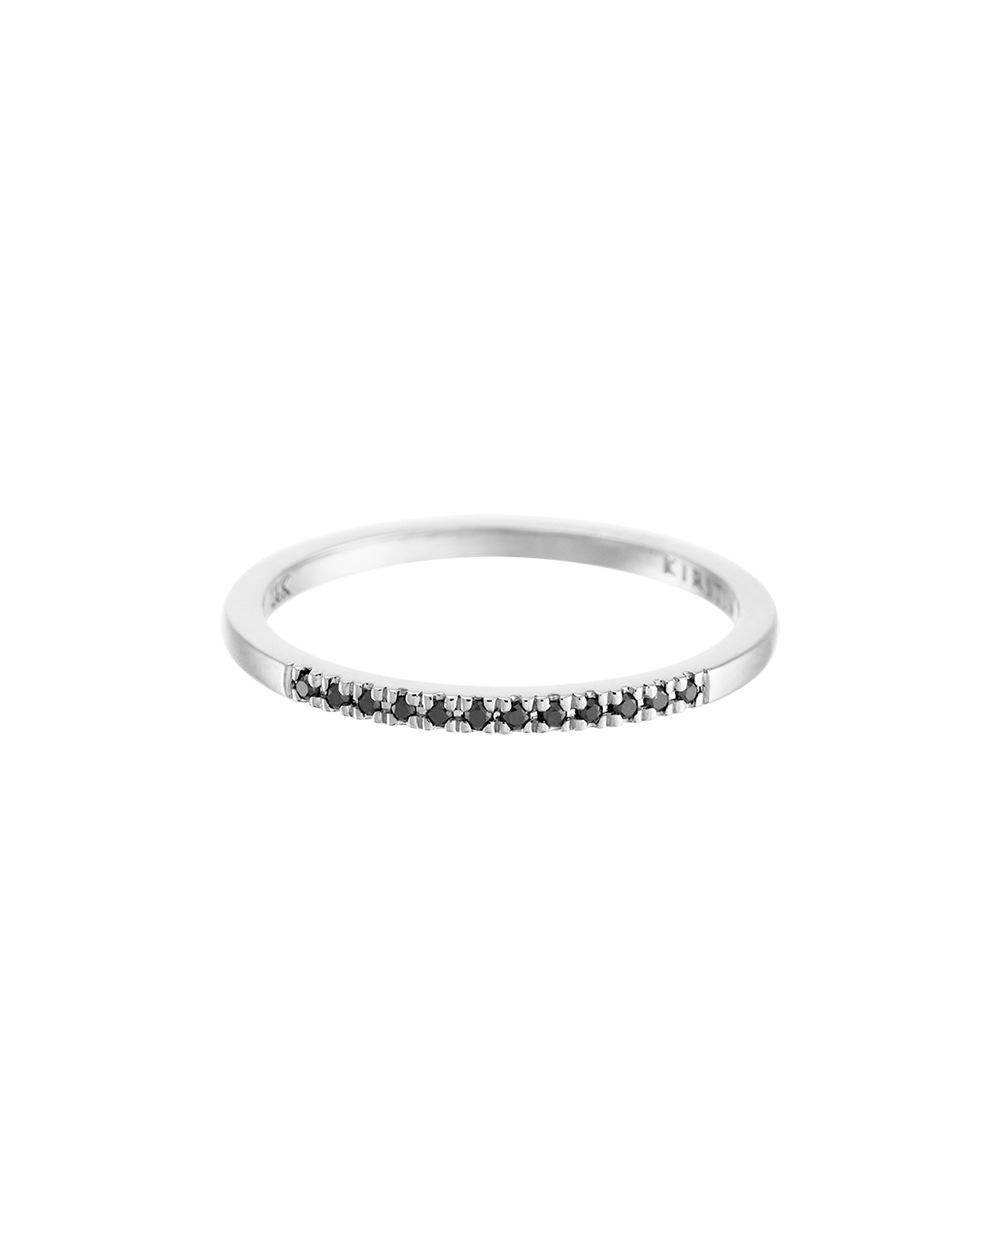 HALF BLACK DIAMOND ETERNITY RING (14K WHITE GOLD) Image 03